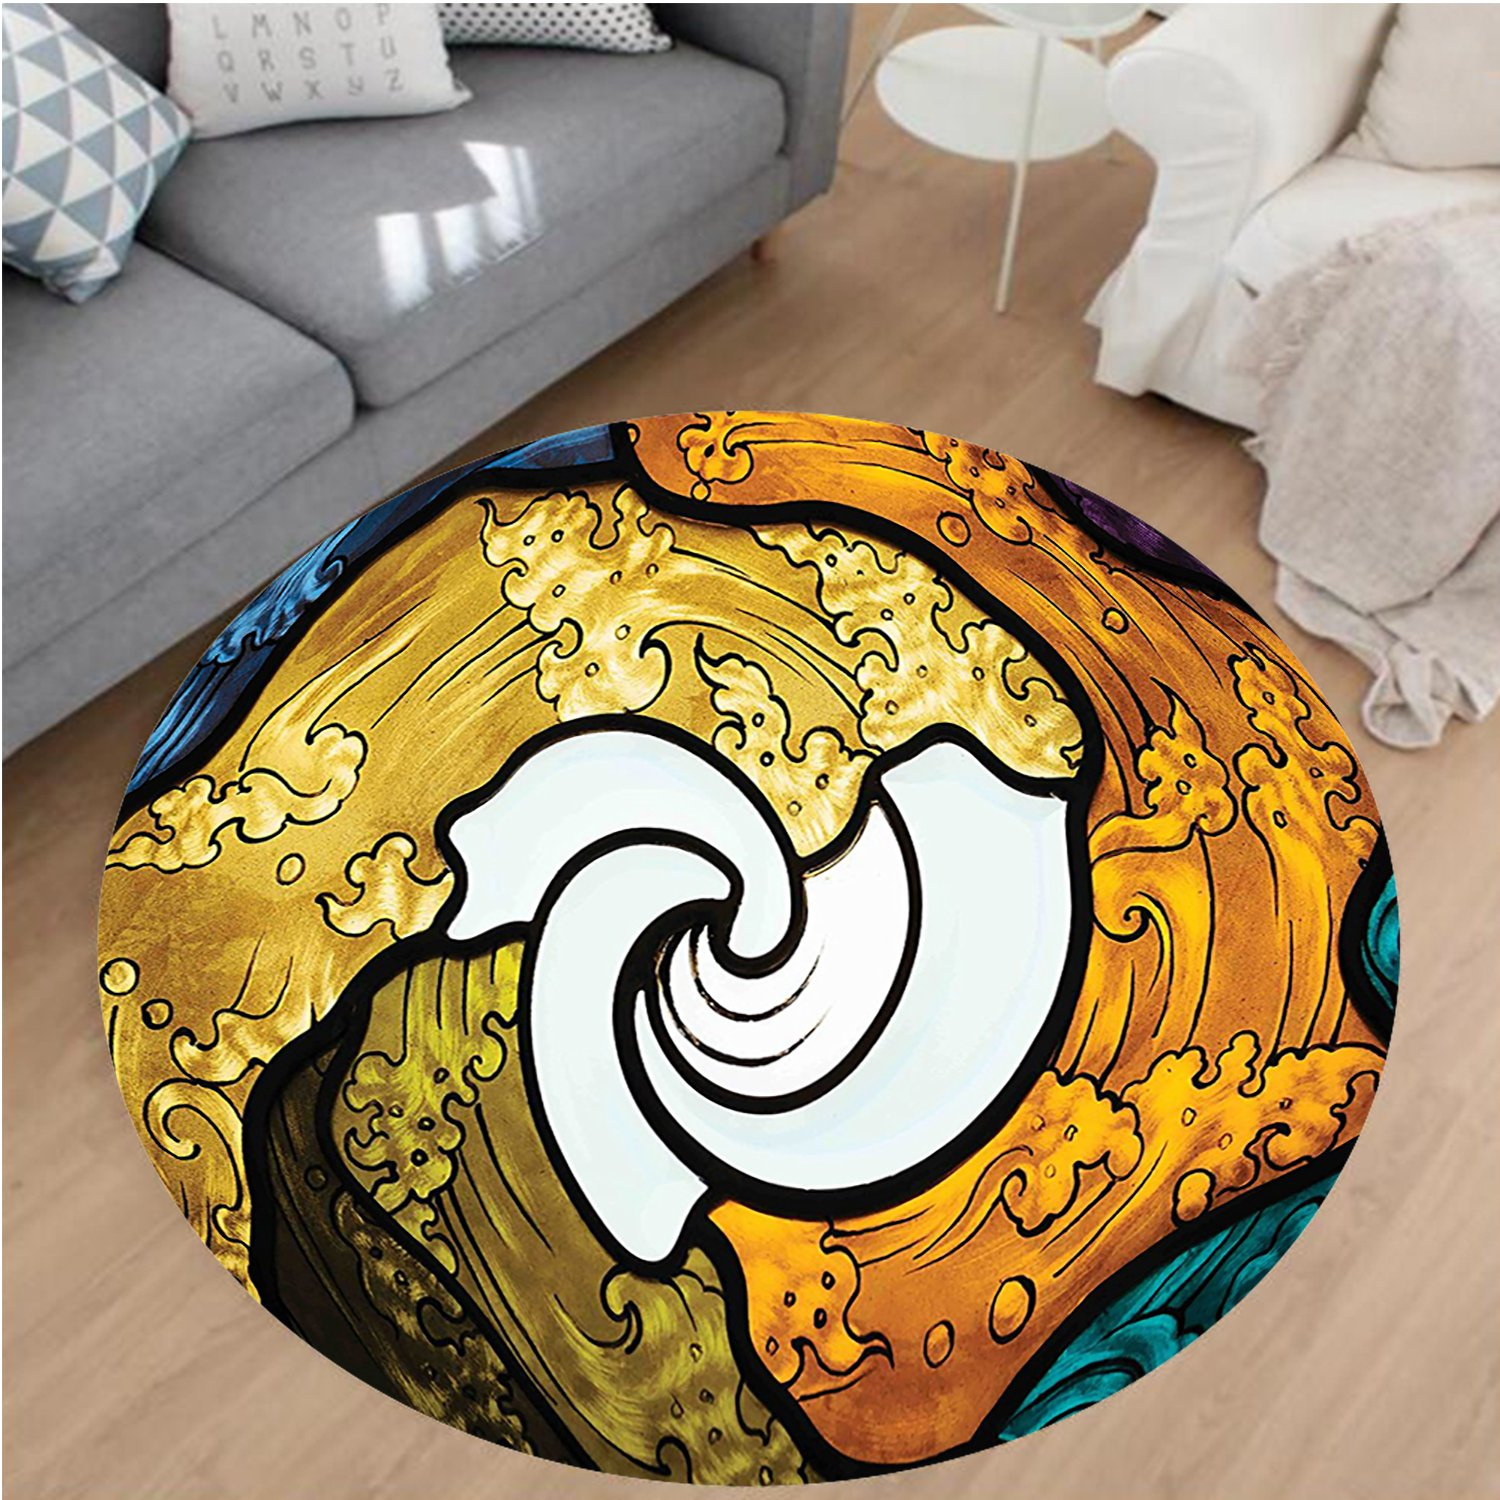 Nalahome Modern Flannel Microfiber Non-Slip Machine Washable Round Area Rug-Pop Art Style Funky Unusual Stained Glass Window Thai Art Pattern Traditional Image Multi area rugs Home Decor-Round 79'' by Nalahome